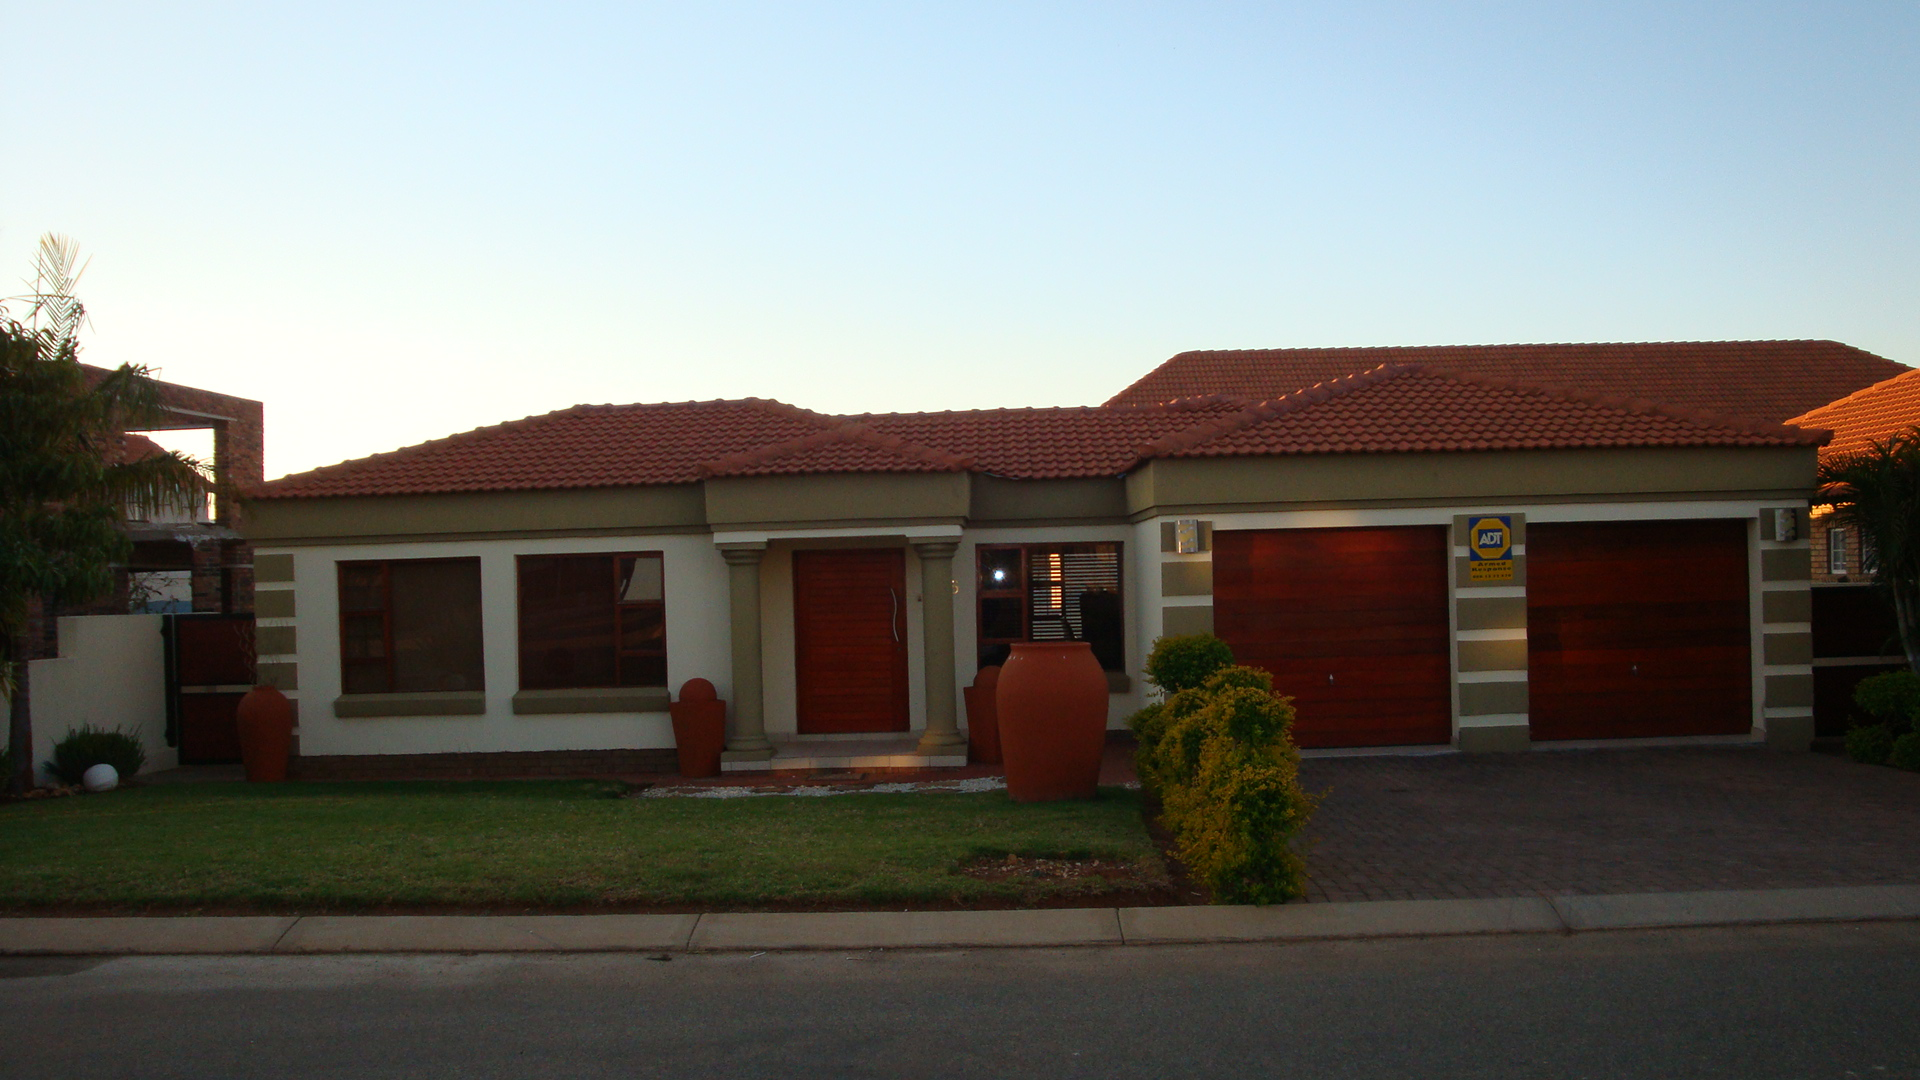 4 bedroom house for sale in polokwane for House designs with price